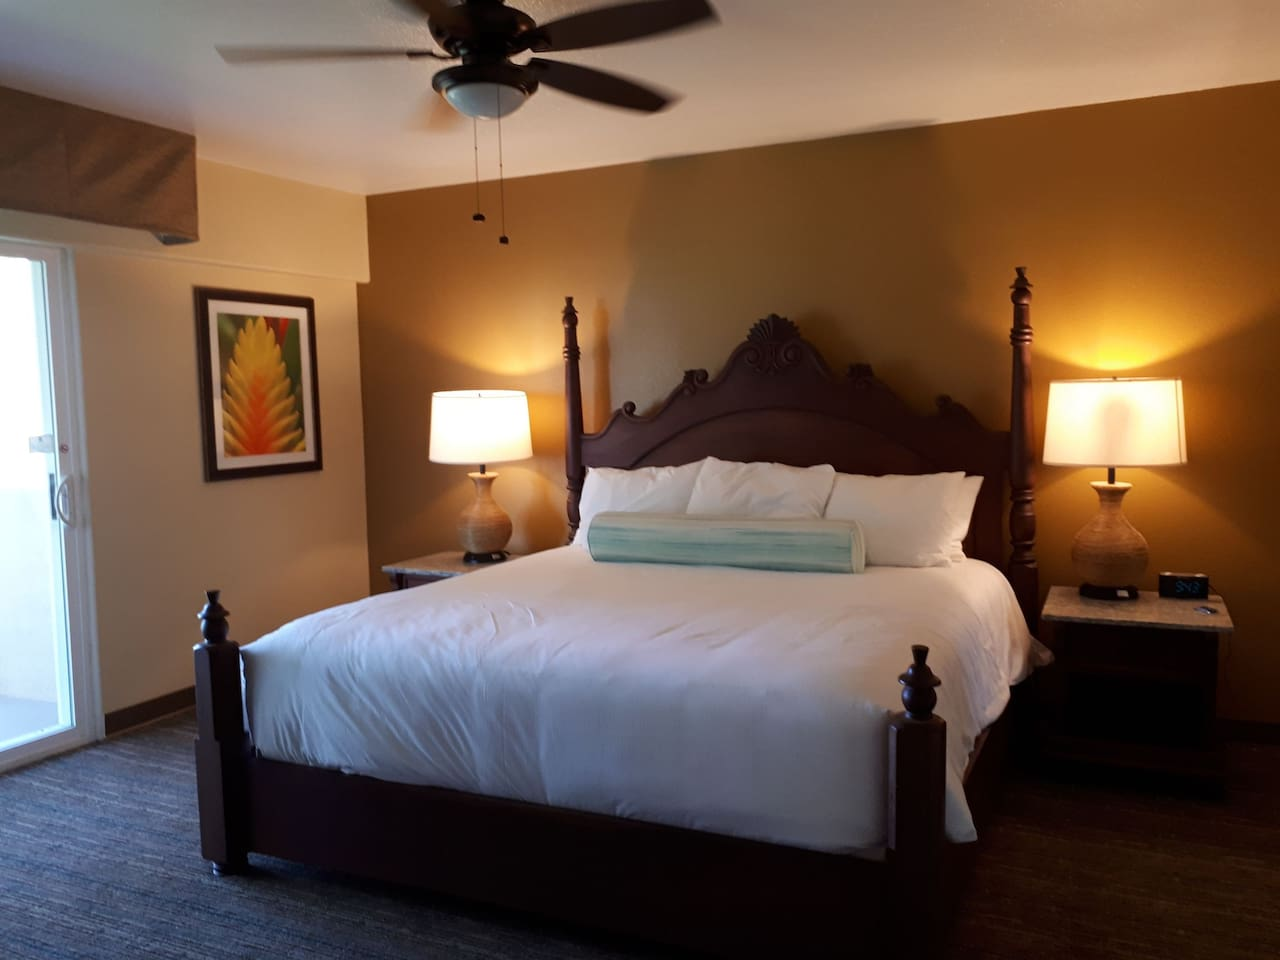 Master bedroom with king bed and authentic Hawaiian Koa wood bed frame